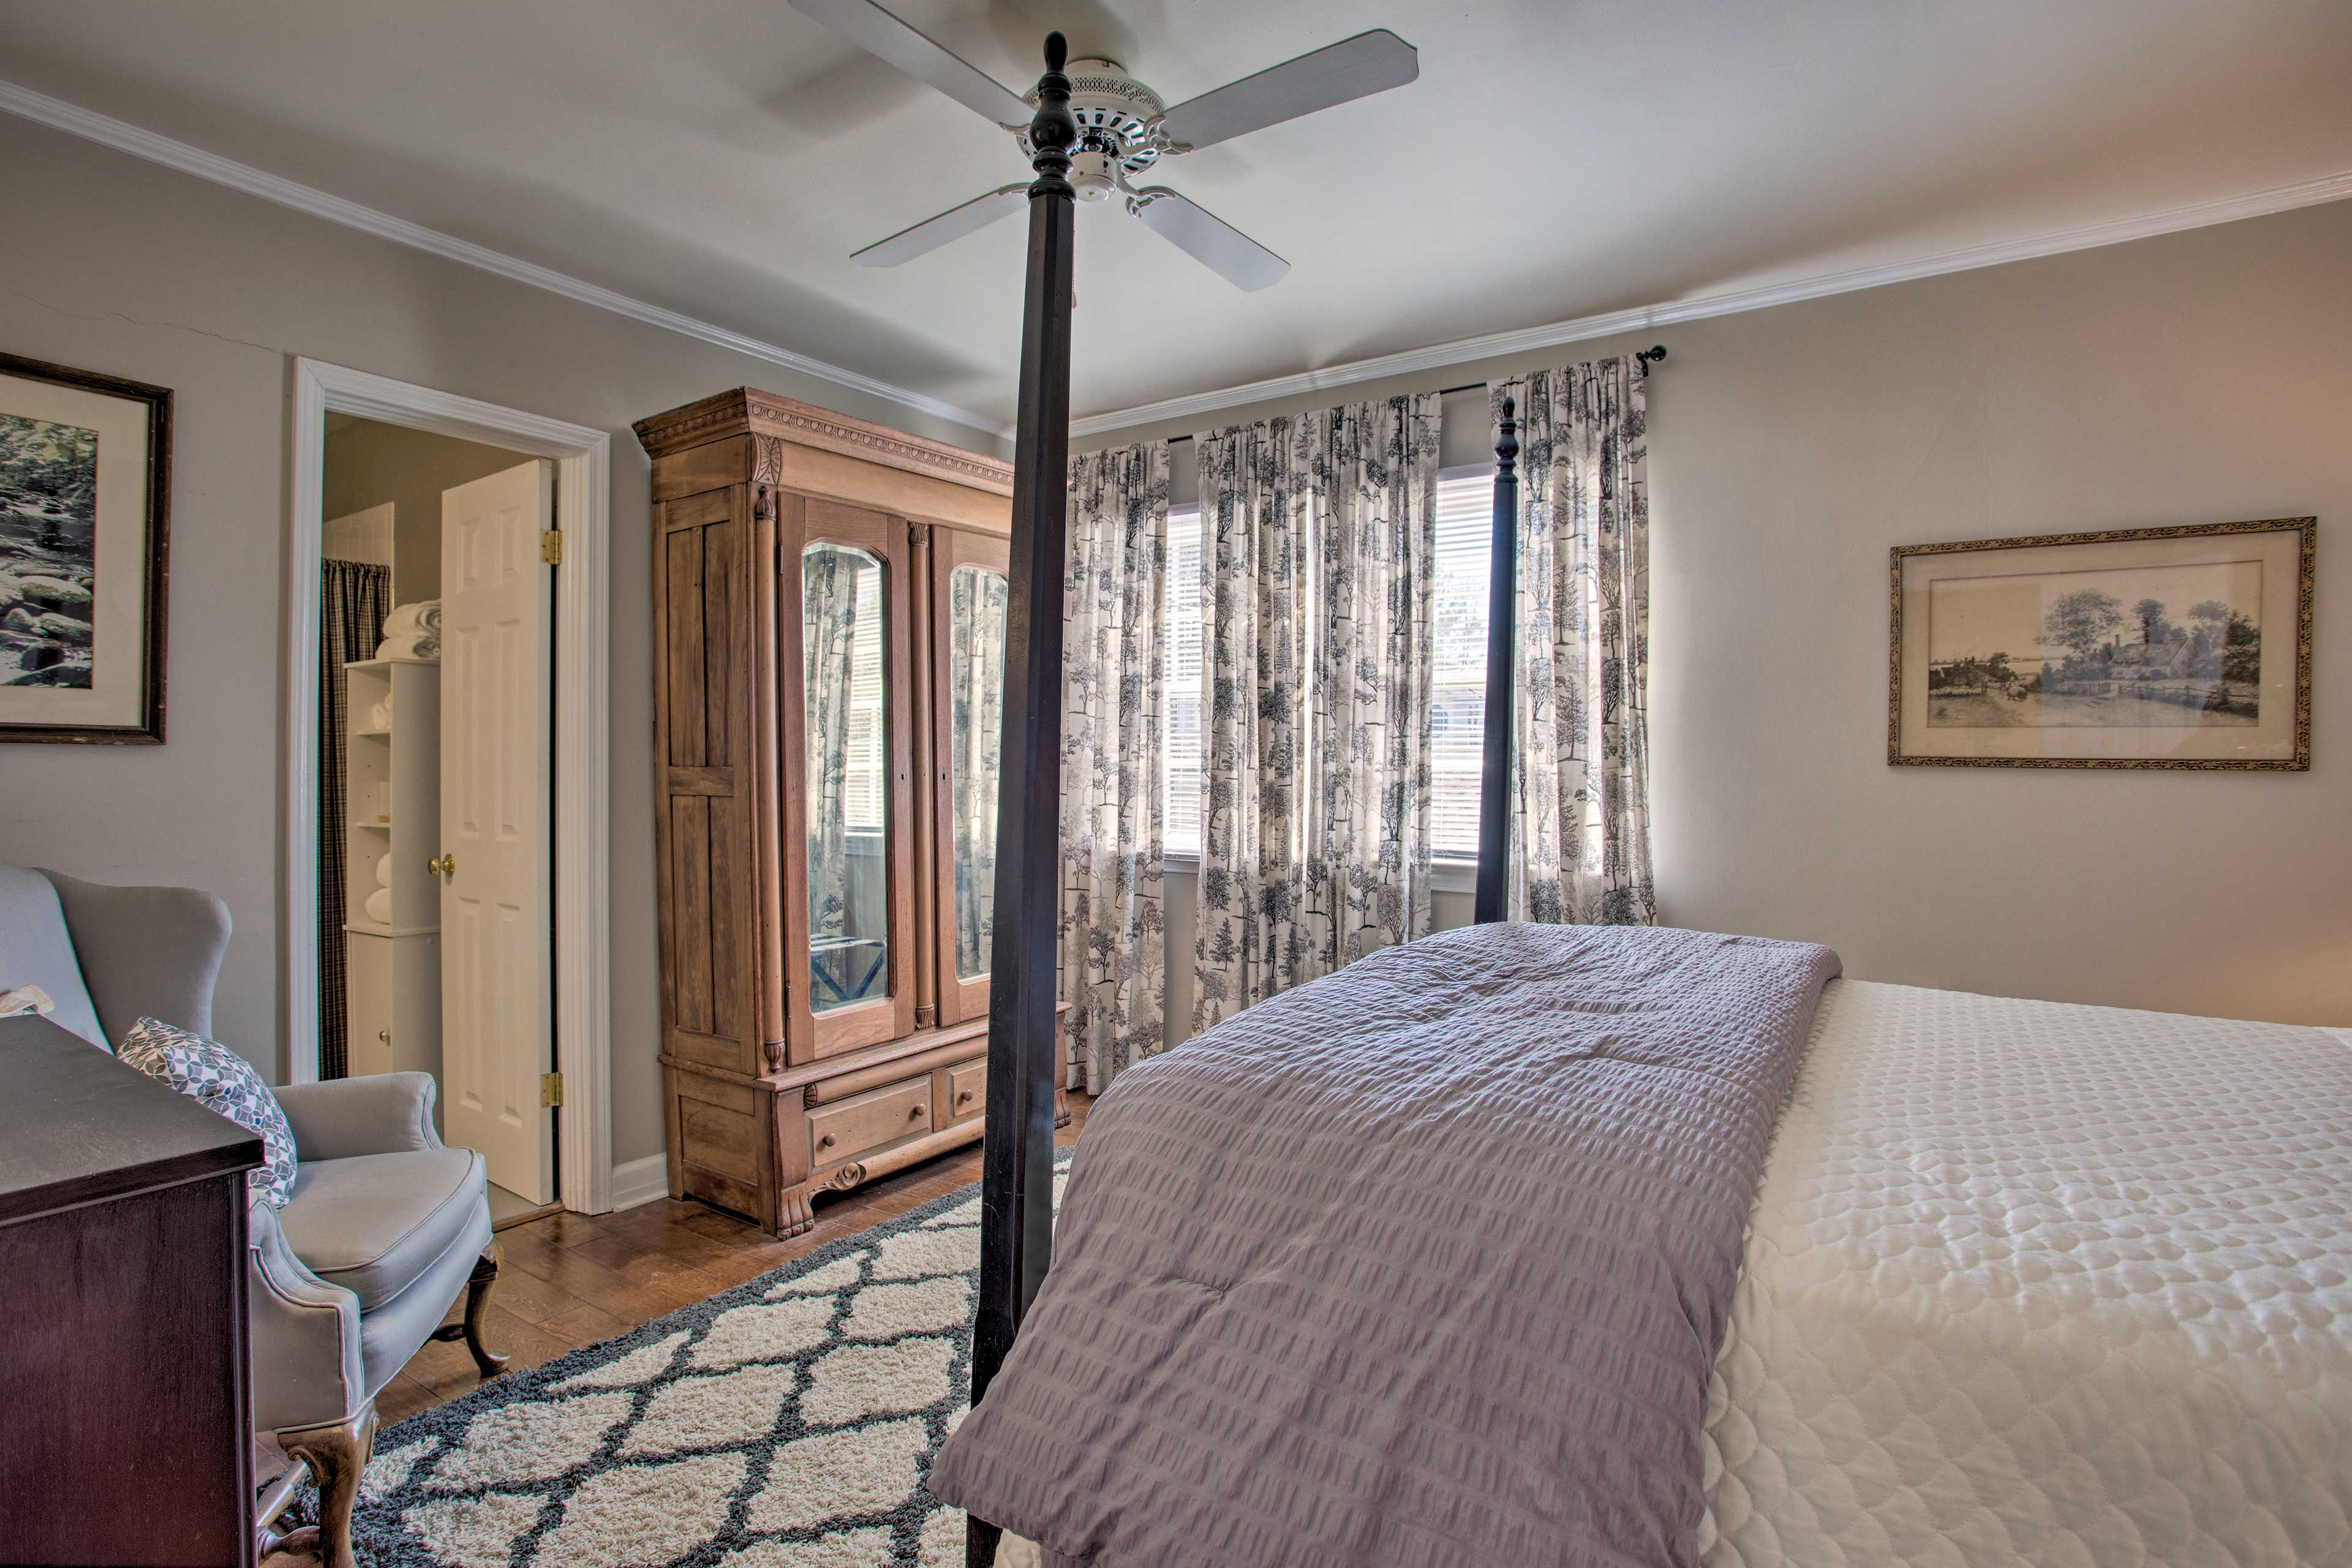 Two guests can share the comfort of this room.